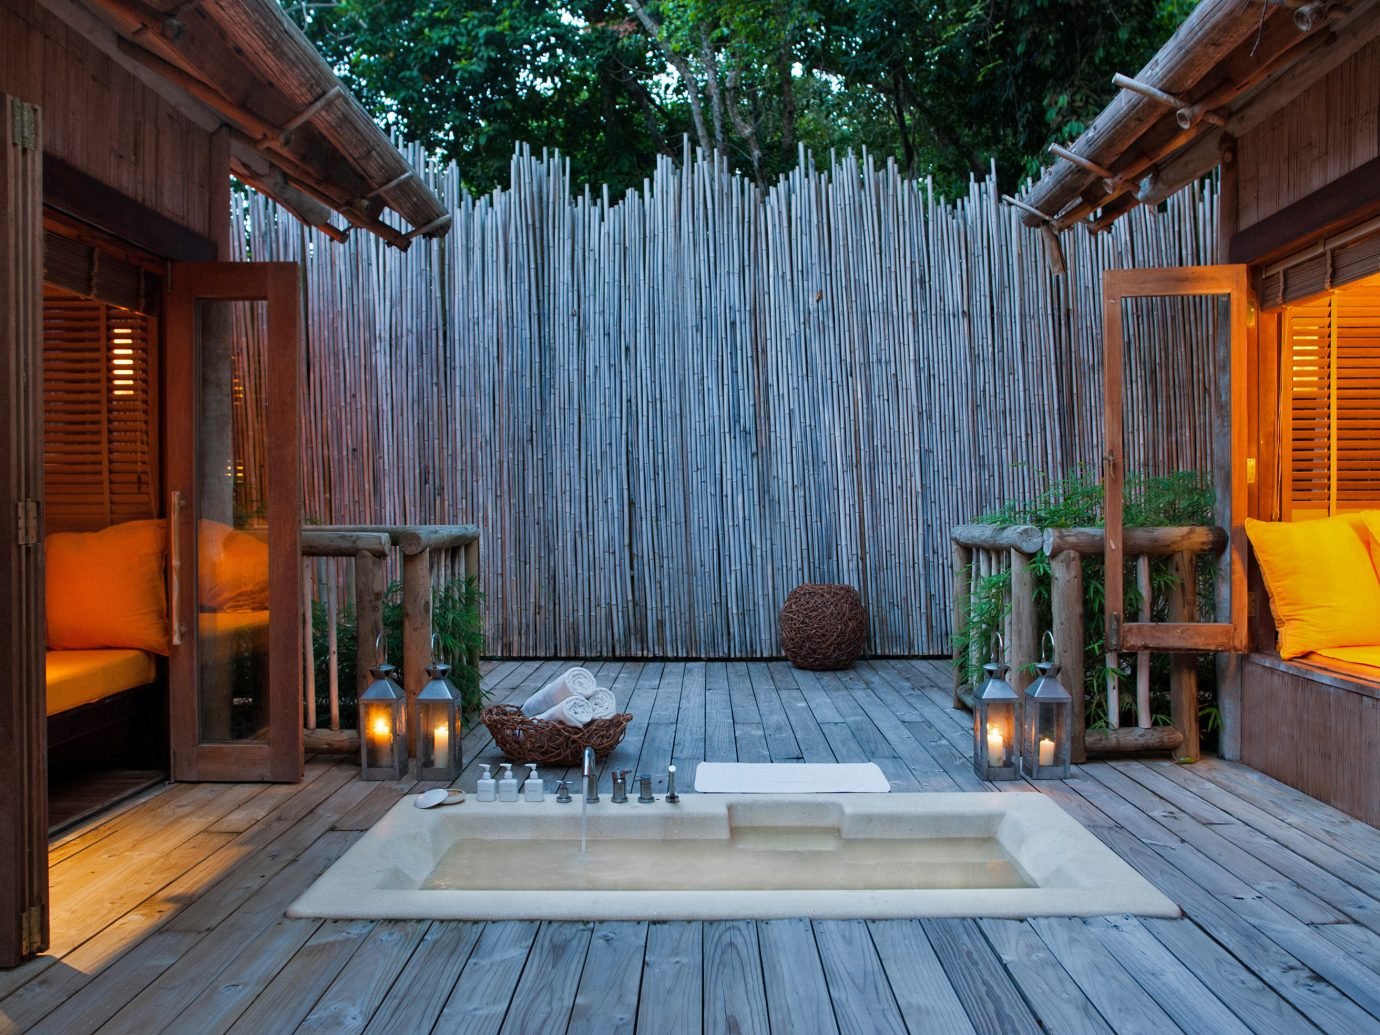 Health + Wellness Hotels Yoga Retreats building wooden house property backyard estate porch swimming pool home Architecture outdoor structure Deck Resort cottage wood Courtyard interior design facade Villa mansion yard stone floor furniture